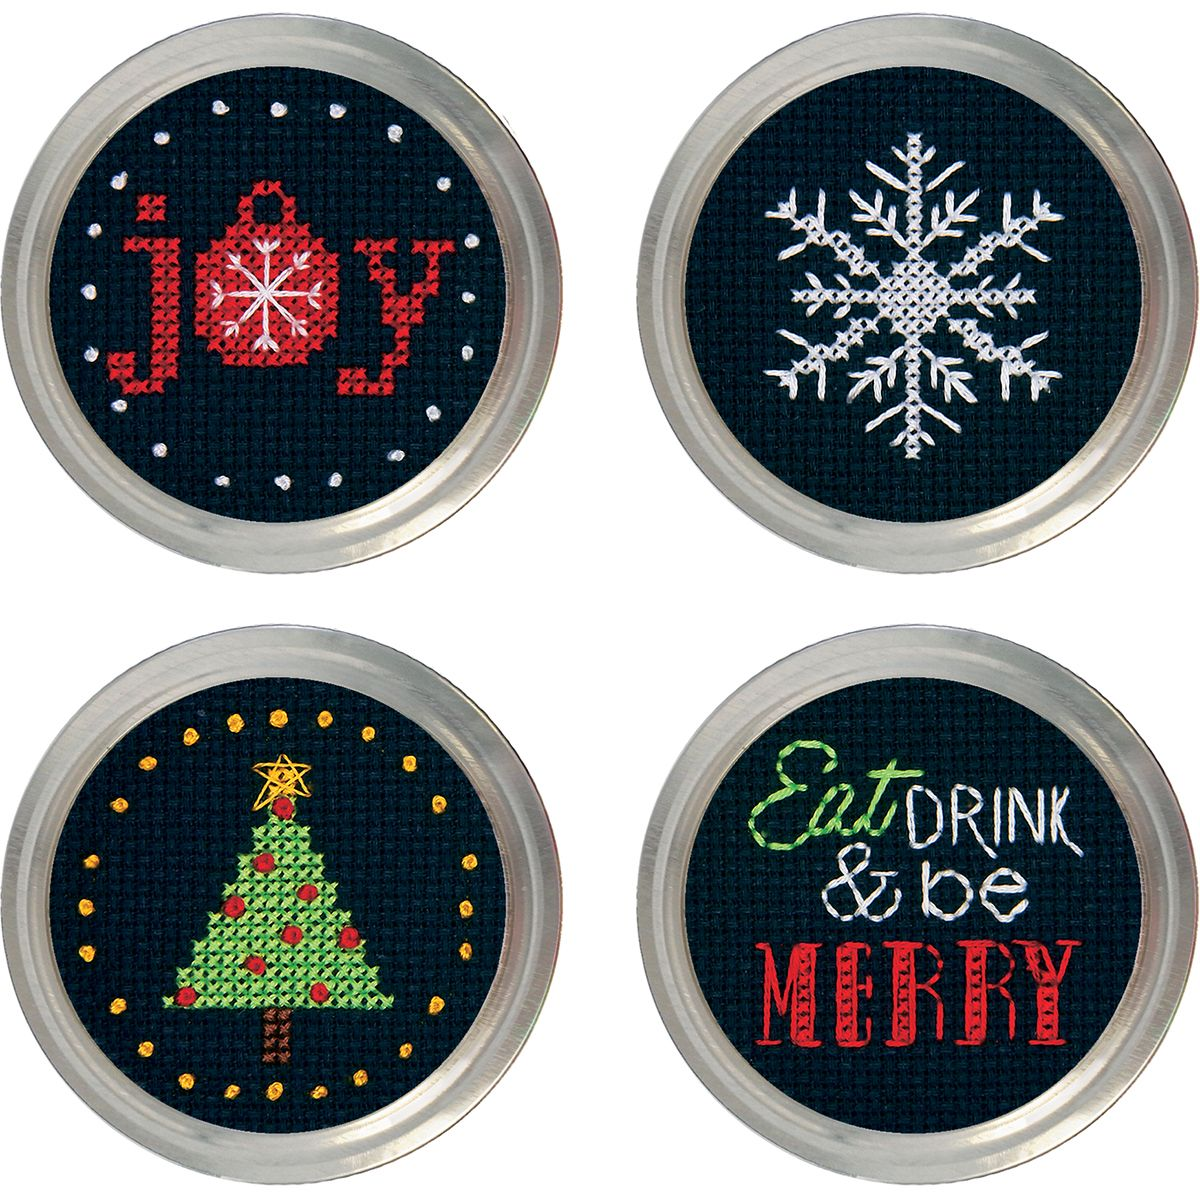 Holiday Cheer Jar Topper Counted Cross Stitch Kit Cross Stitch Christmas Ornaments Christmas Cross Stitch Counted Cross Stitch Kits